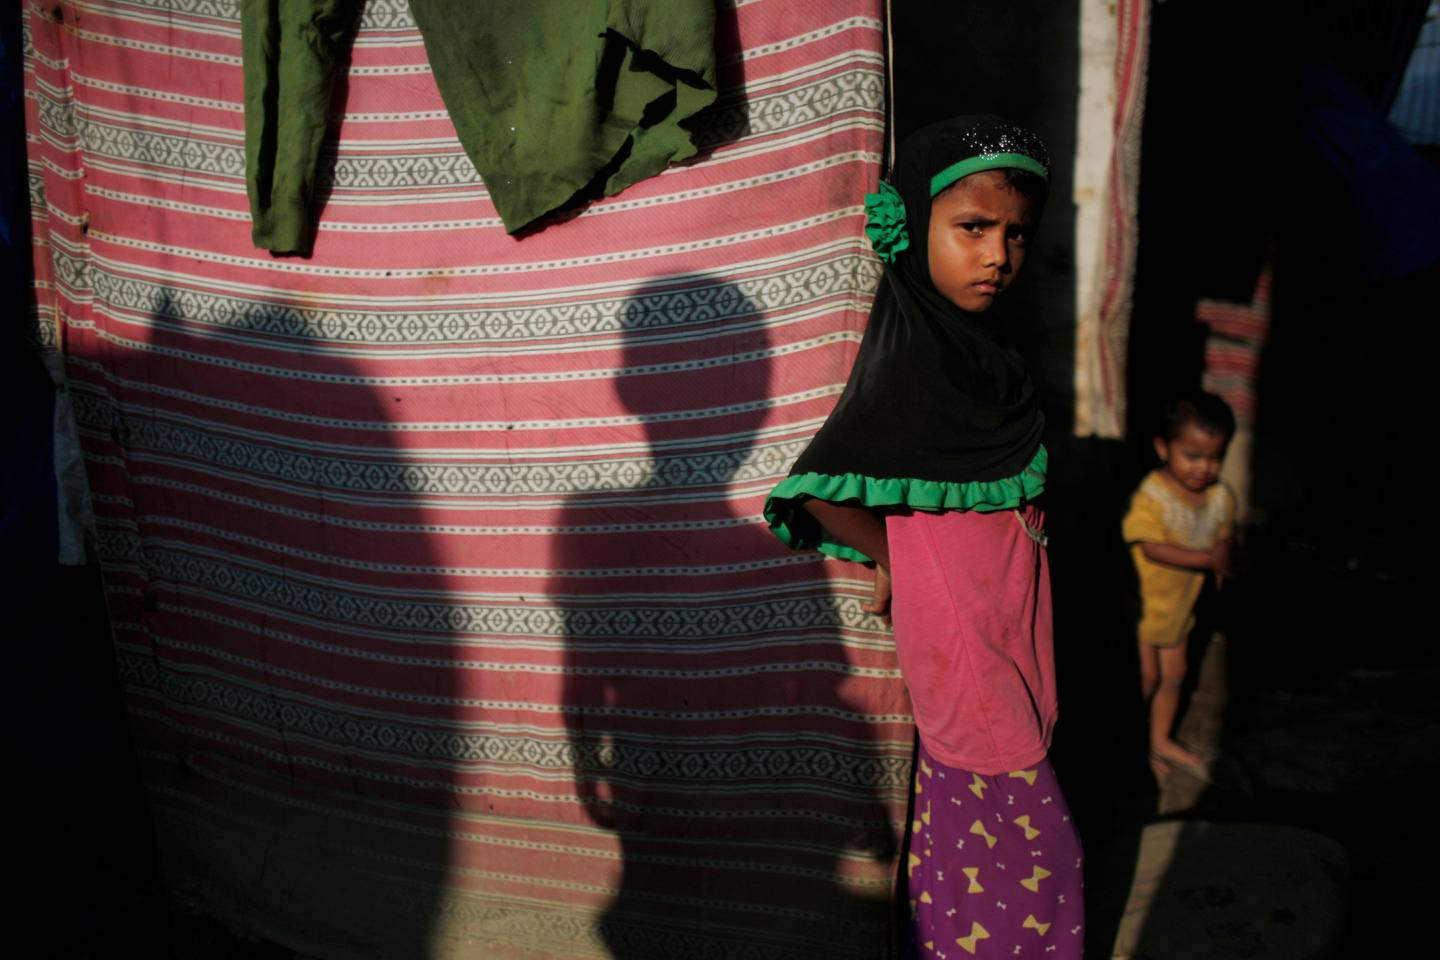 In this Sunday, Sept. 10, 2017, photo, a young Rohingya stands outside her temporary shelter at a camp in Kathmandu, Nepal. Recent violence in Myanmar has driven hundreds of thousands of Rohingya Muslims to seek refuge across the border in Bangladesh. Only about 250 Rohingya live in Nepal since anti-Muslim riots erupted in Myanmar in 2012, according to the U.N. refugee agency, which offers them education and medical support. The refugees live in a ramshackle camp carved out on a slope on the outskirts of the capital, Kathmandu. Their huts of tin, bamboo and plastic sheets are connected by narrow stone steps. (AP Photo/Niranjan Shrestha)